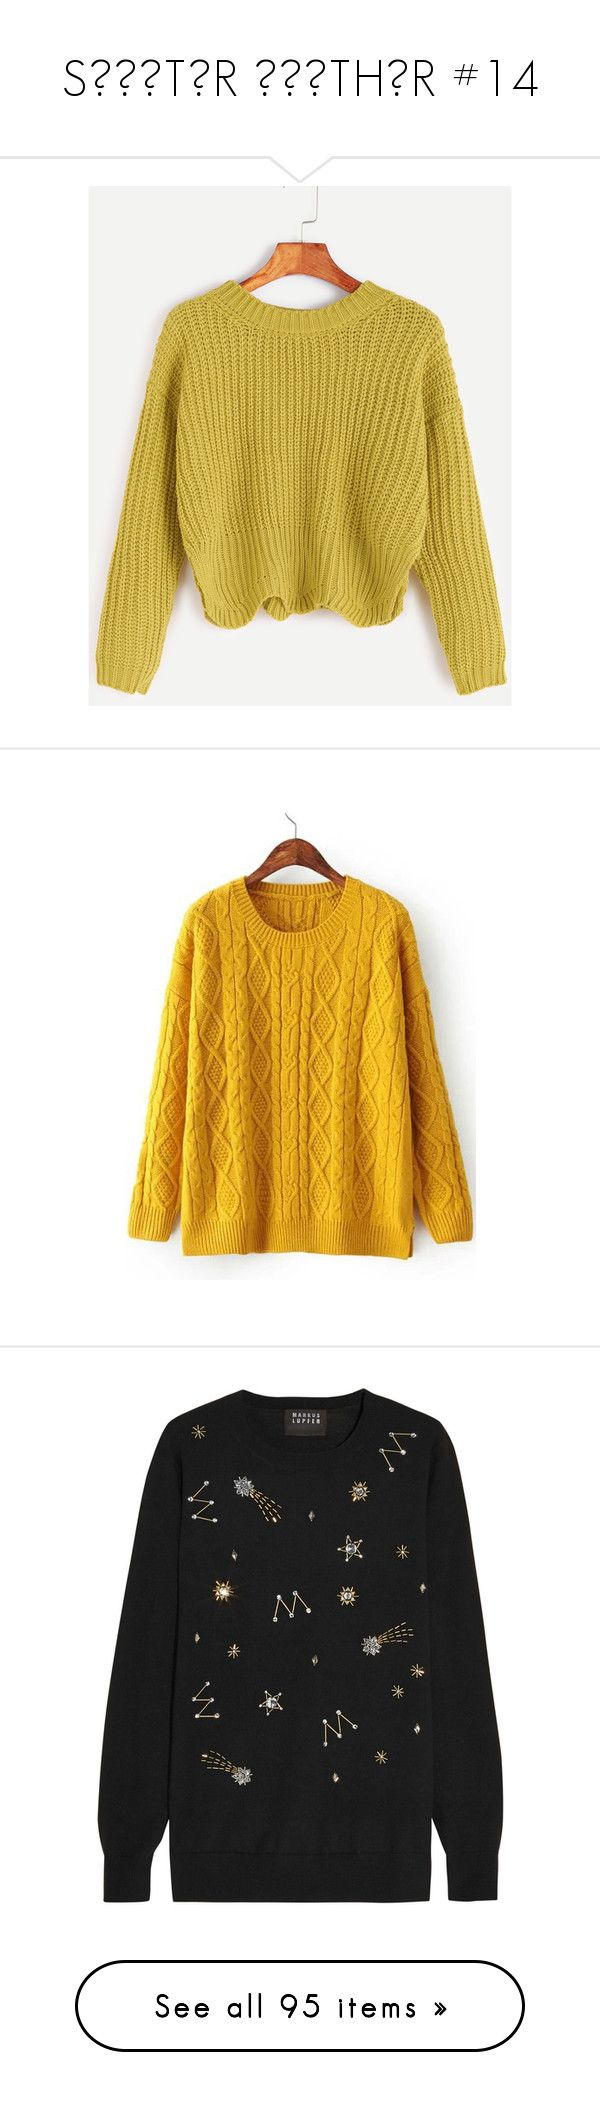 """""""SШΣΔTΣR ШΣΔTHΣR #14"""" by booknerd1326 ❤ liked on Polyvore featuring tops, sweaters, yellow, long sleeve tops, pullover sweater, sweater pullover, yellow pullover sweater, acrylic sweater, outerwear and shirts"""